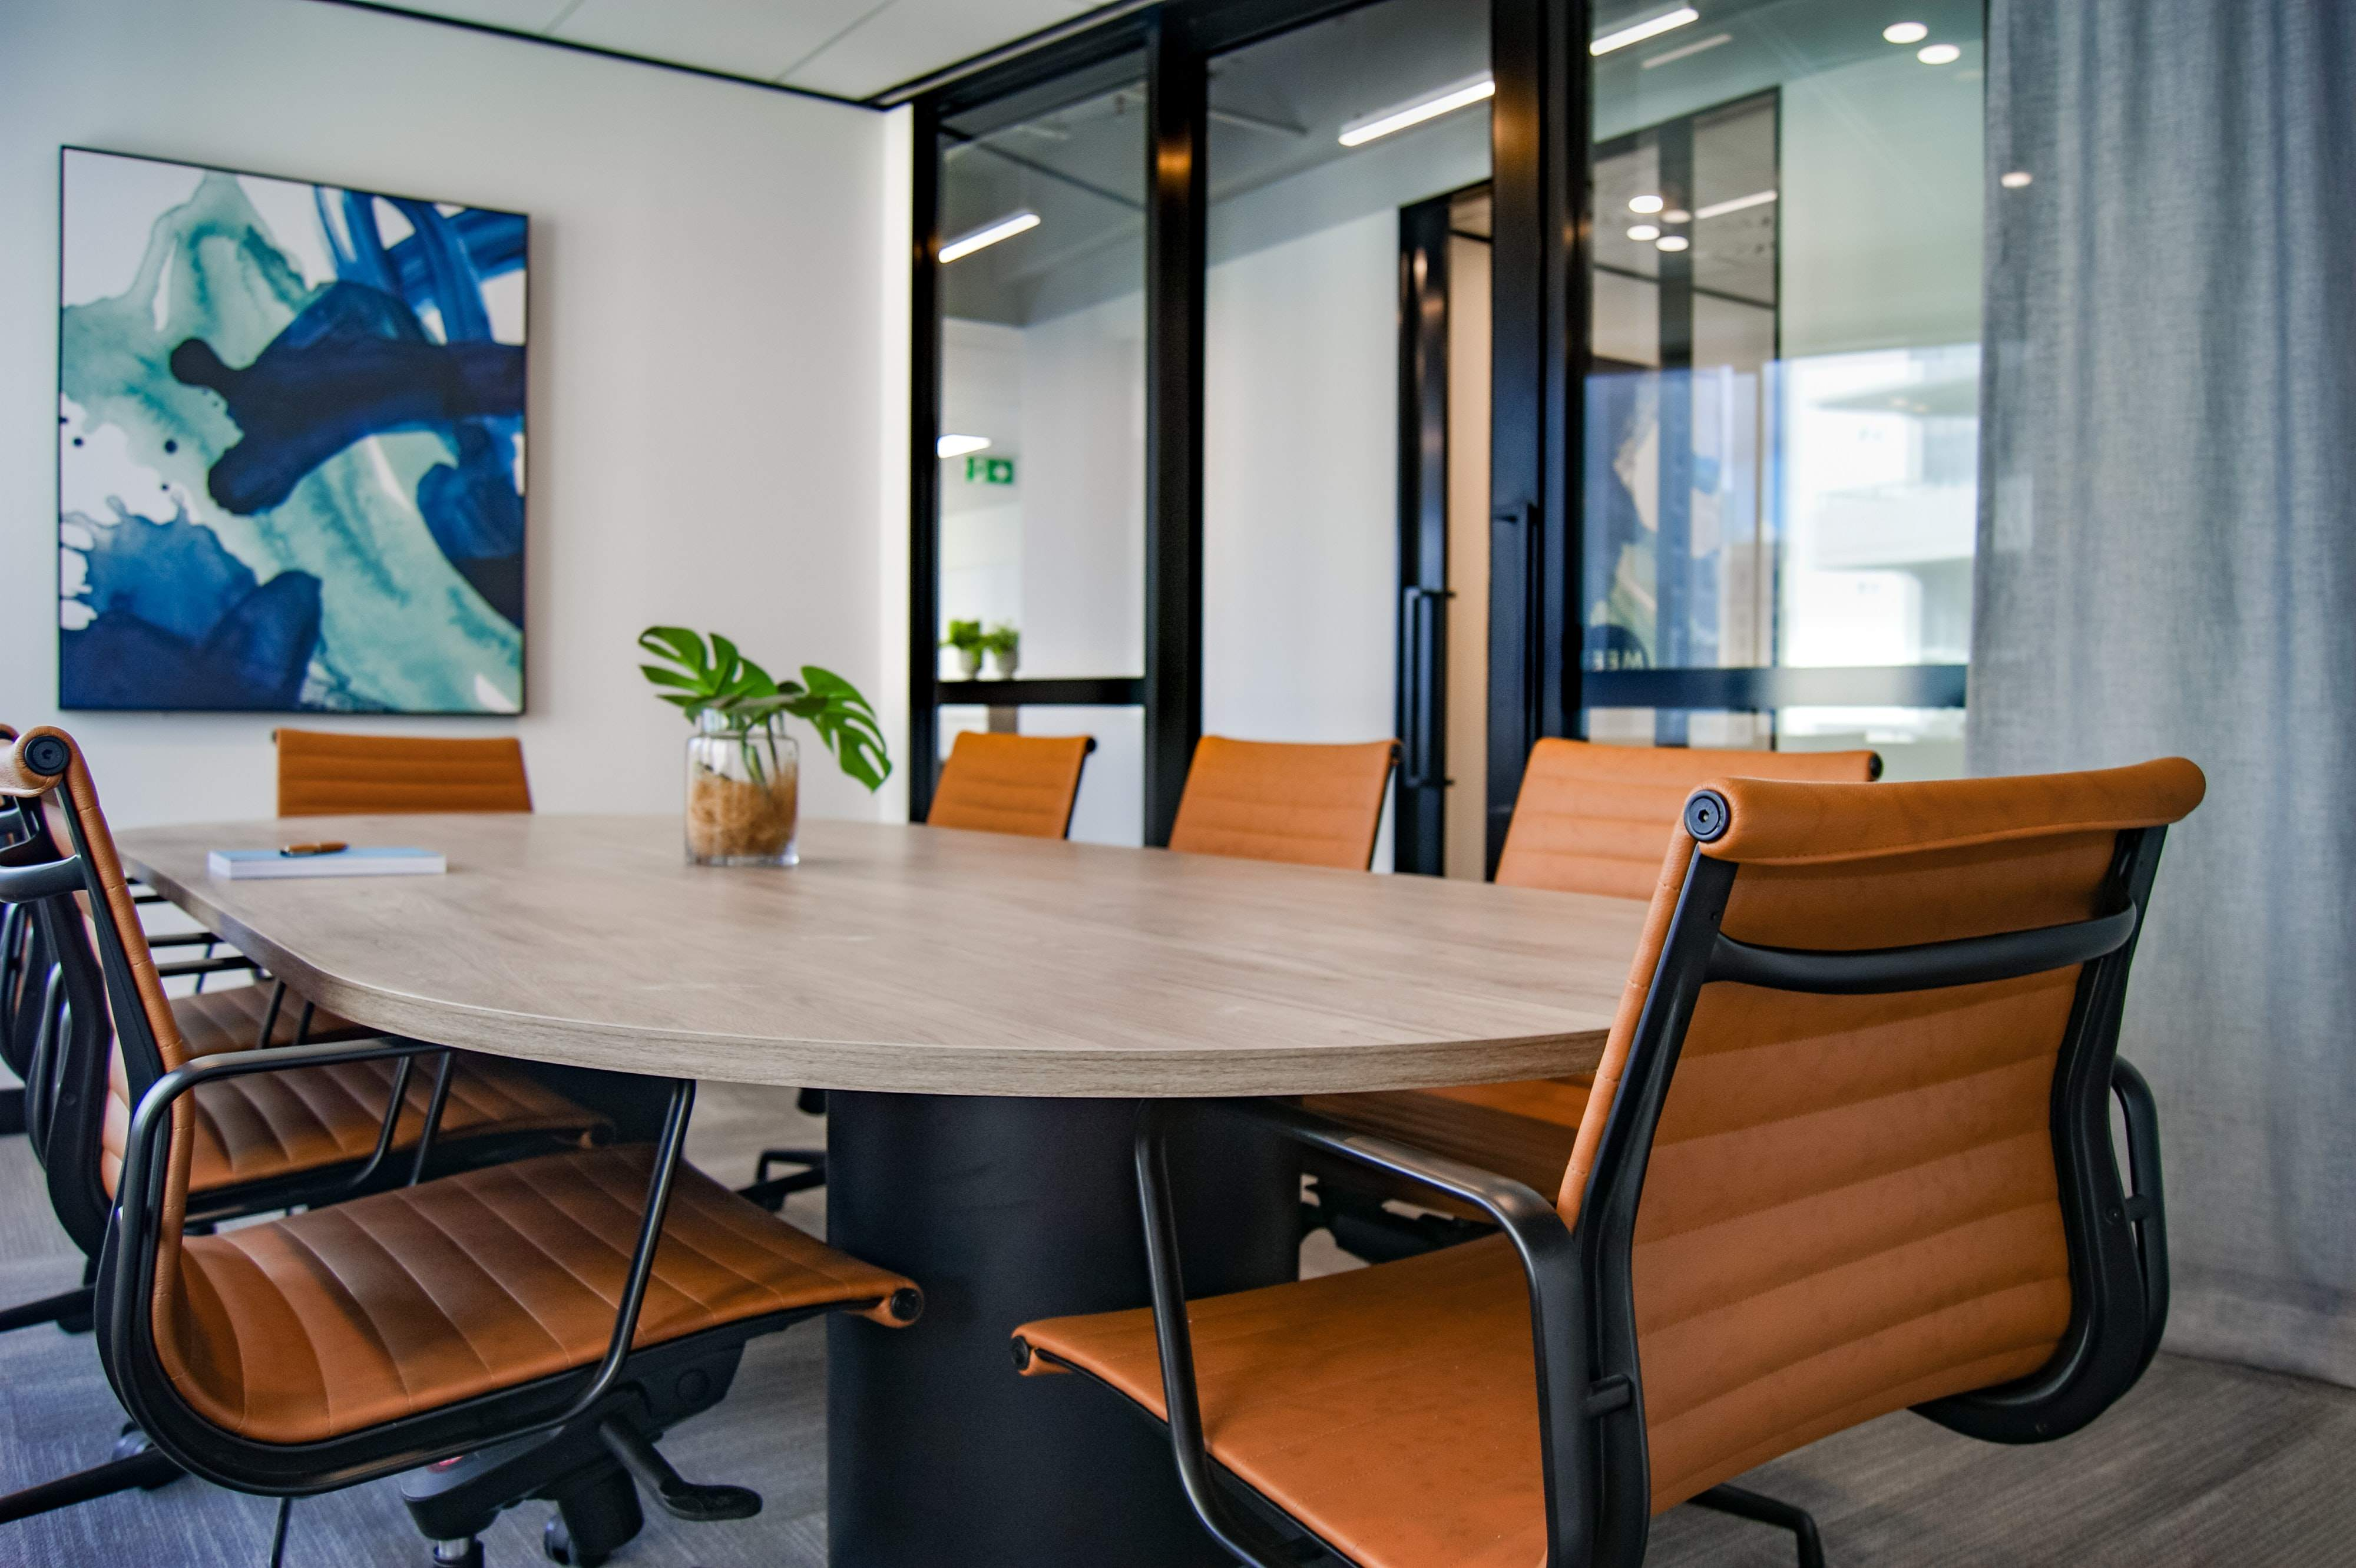 The office furniture market